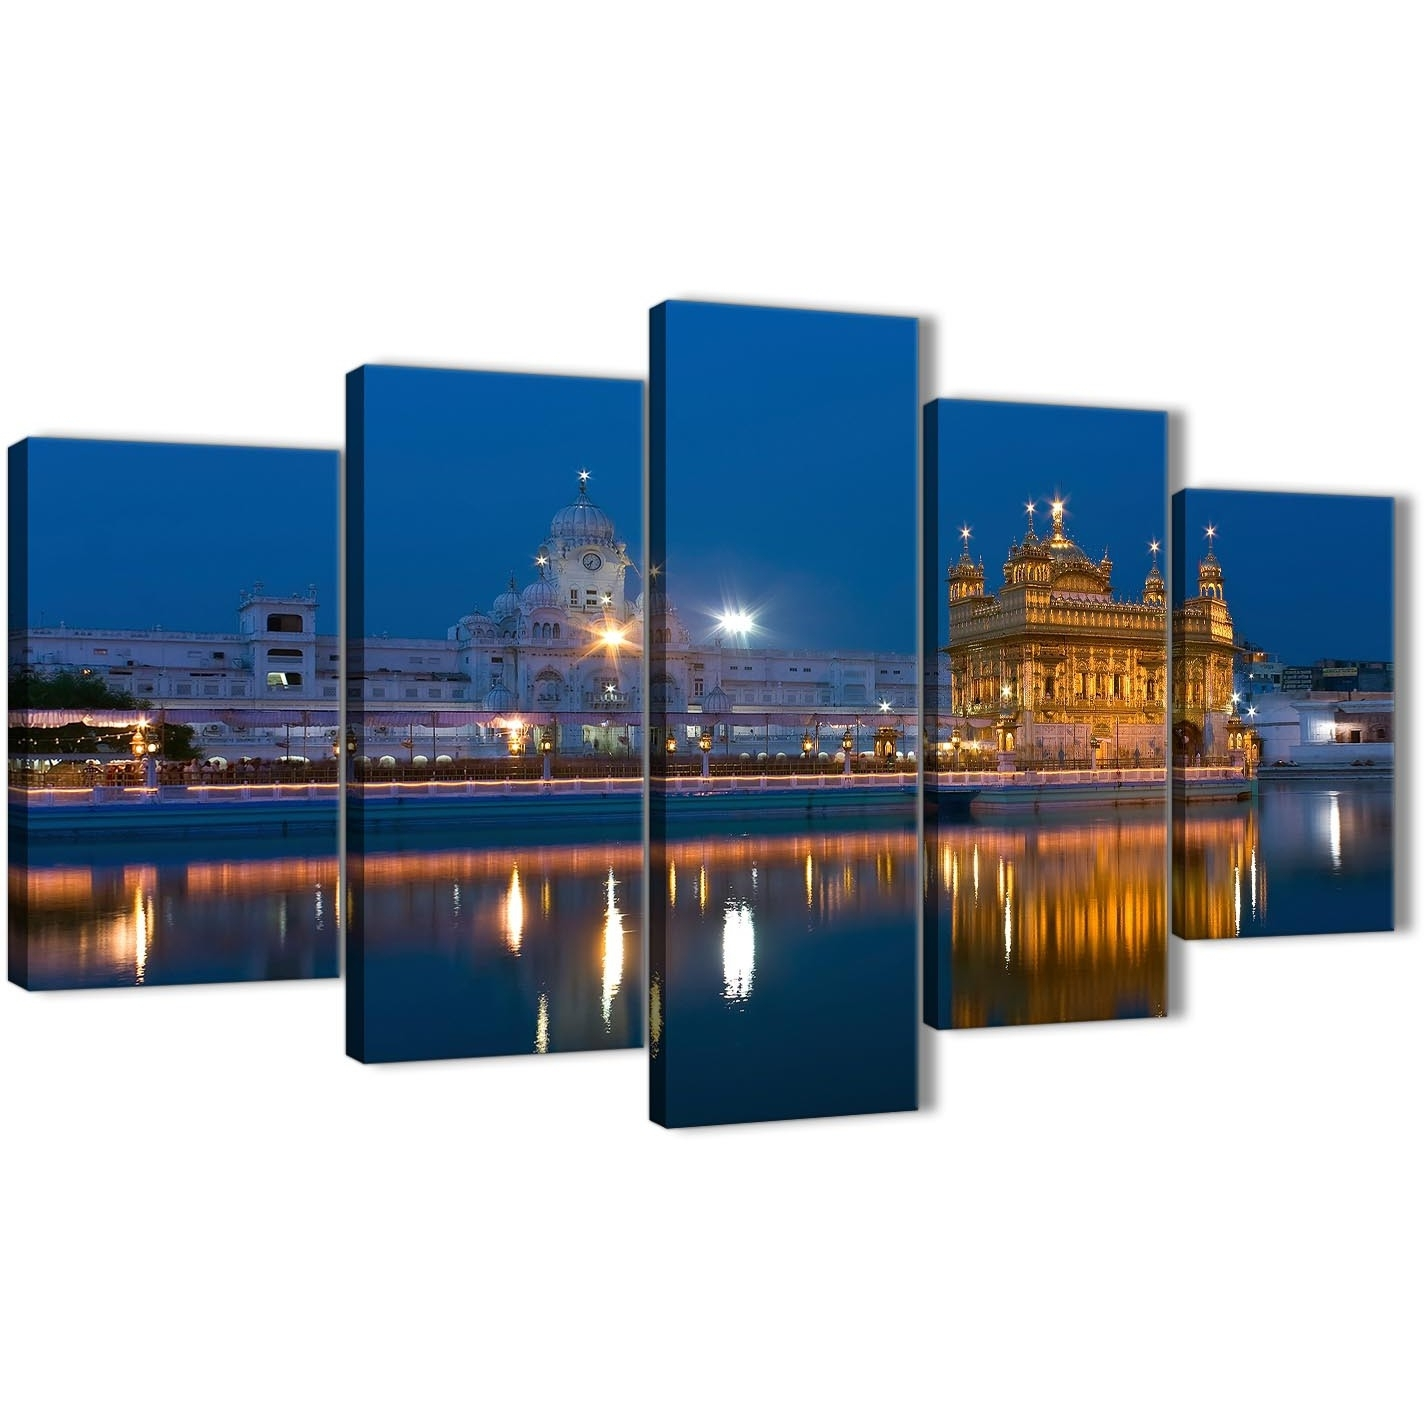 5 Panel Canvas Wall Art Pictures – Sikh Golden Temple Amritsar With Most Popular 5 Piece Canvas Wall Art (View 3 of 20)